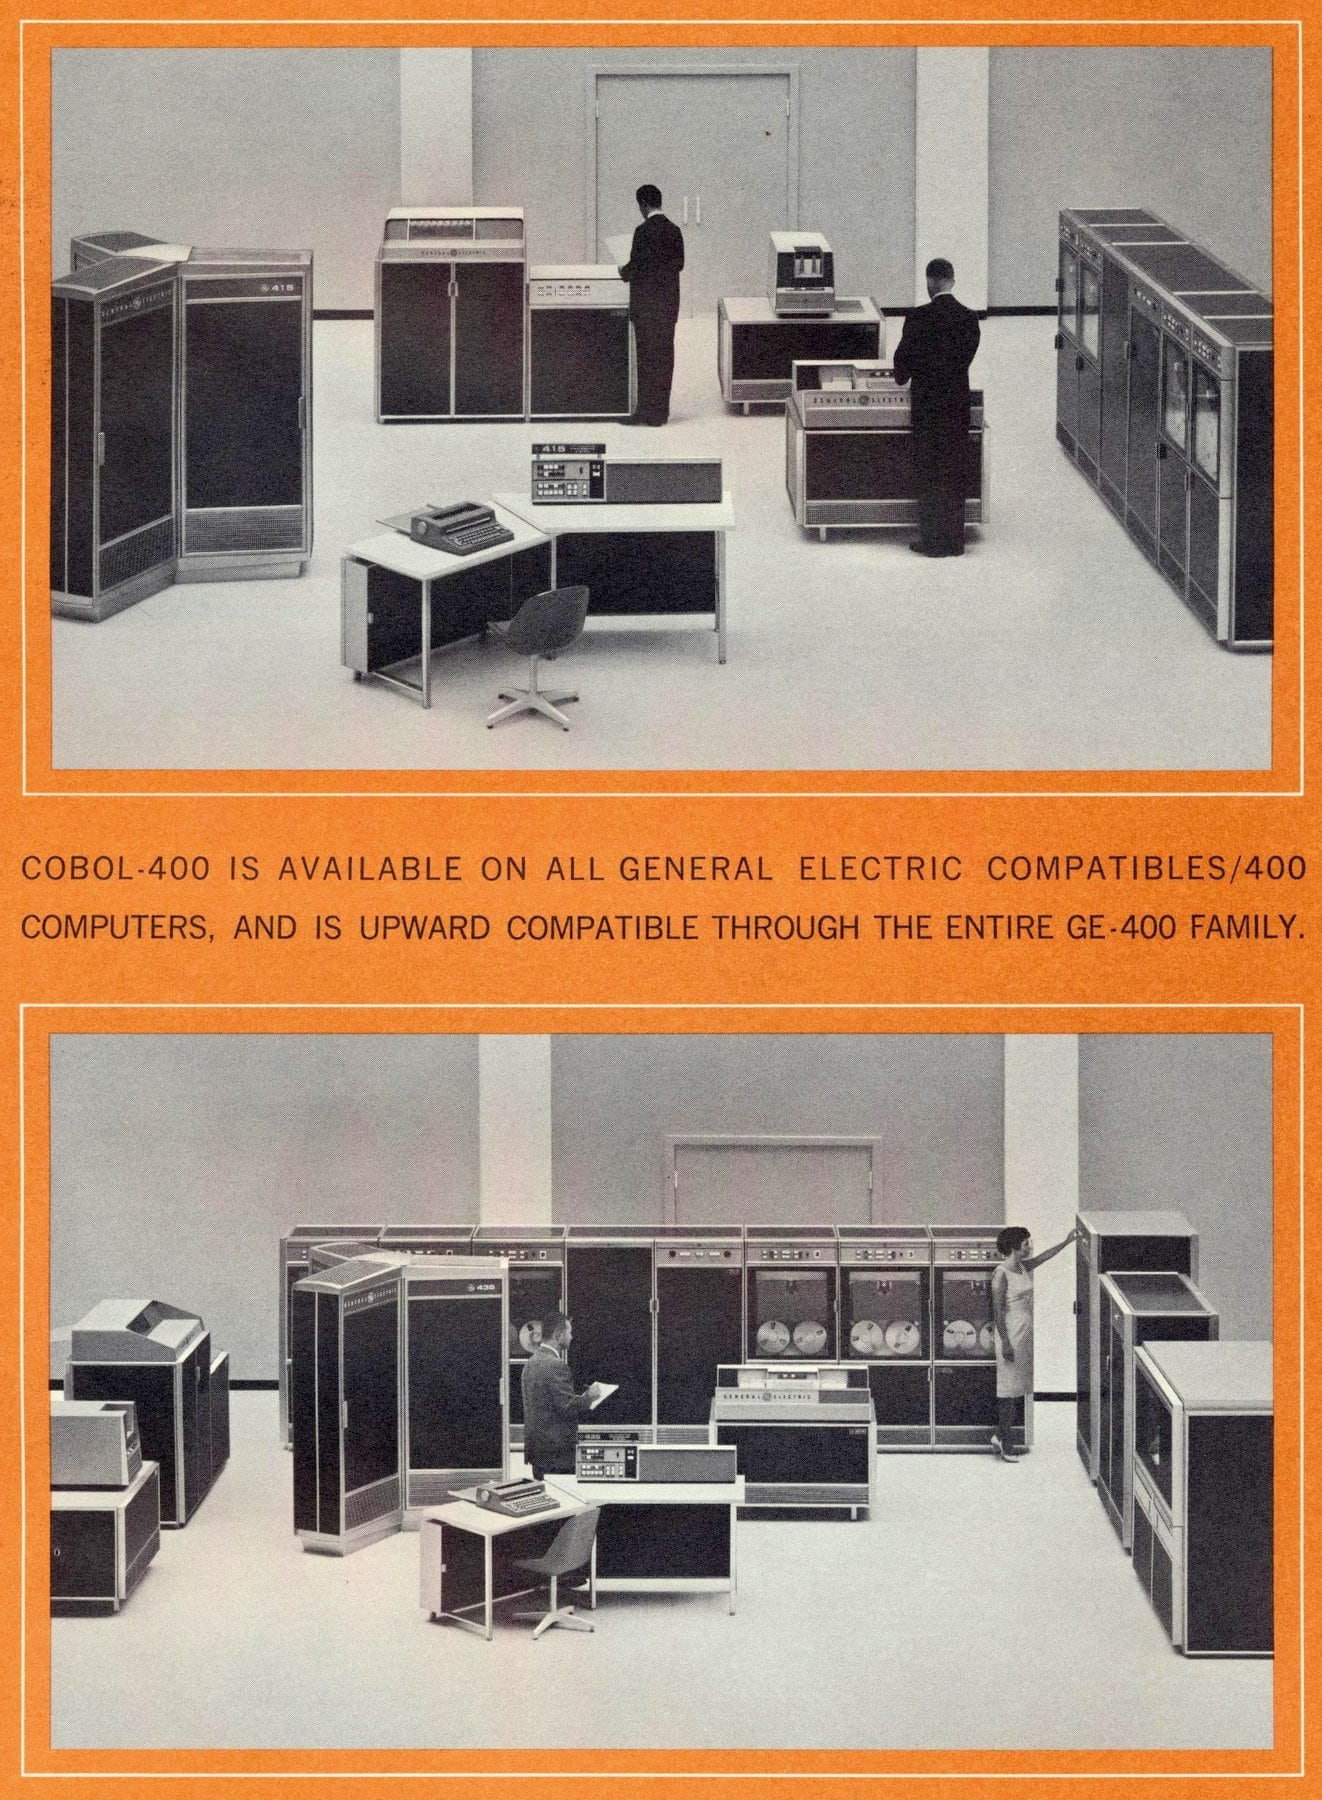 General Electric computers (1960s)